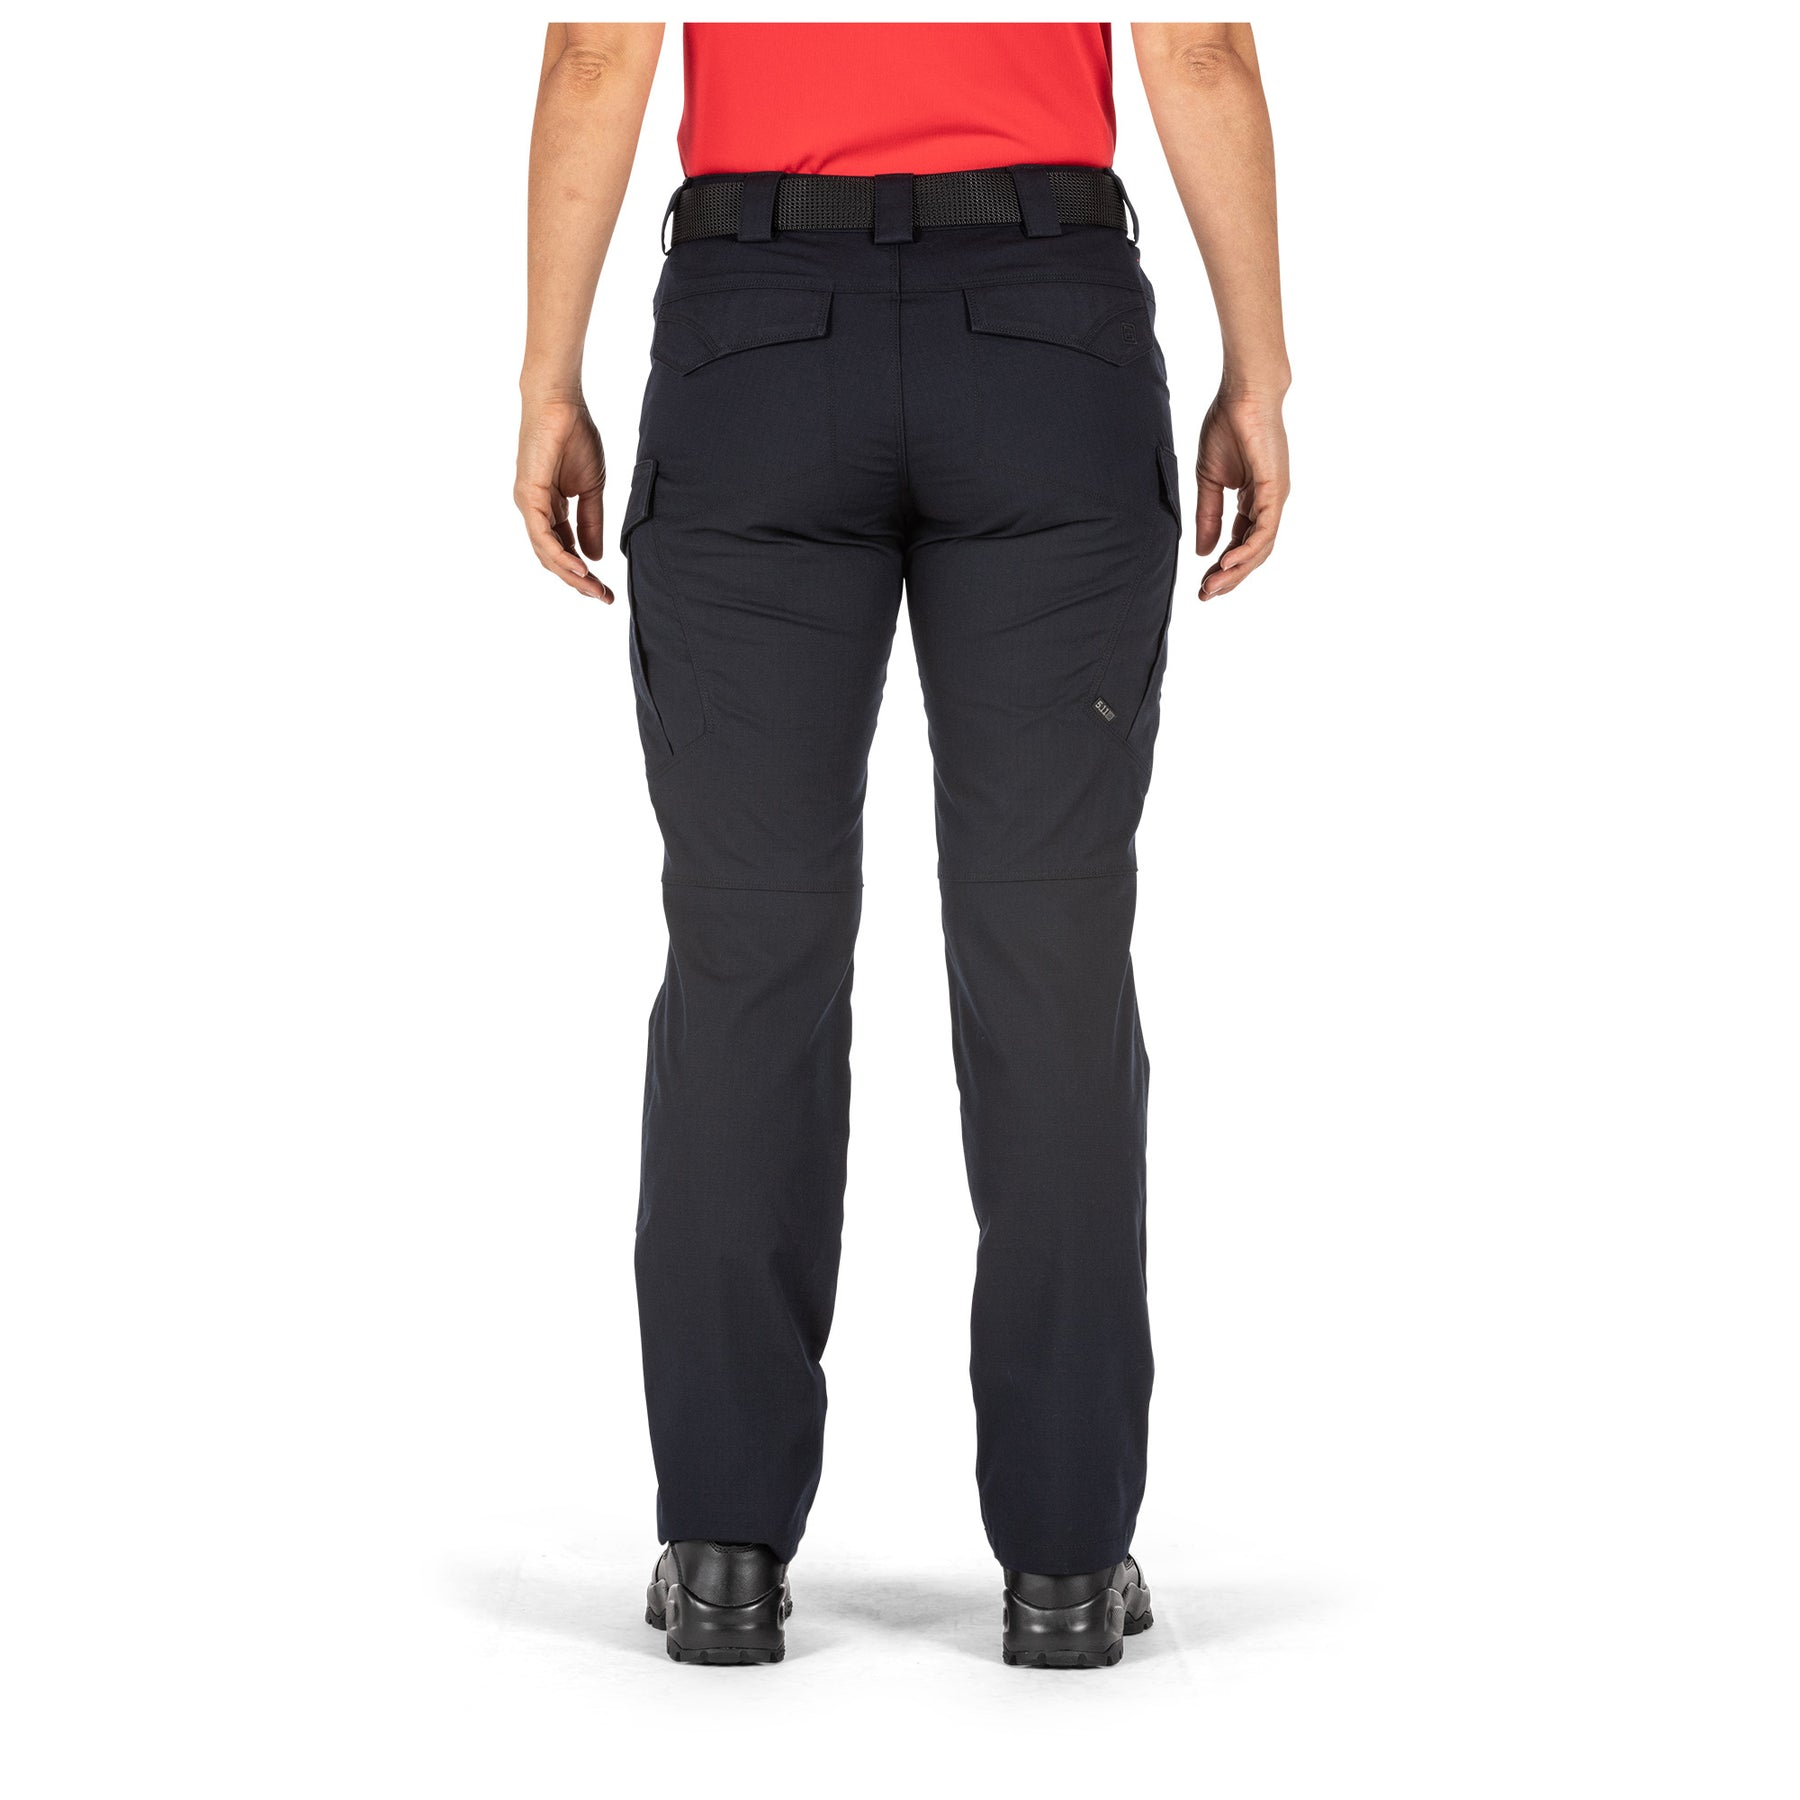 5 11 Tactical Etiquetado Pantalon Tactico Mujer Risk Top Tactical